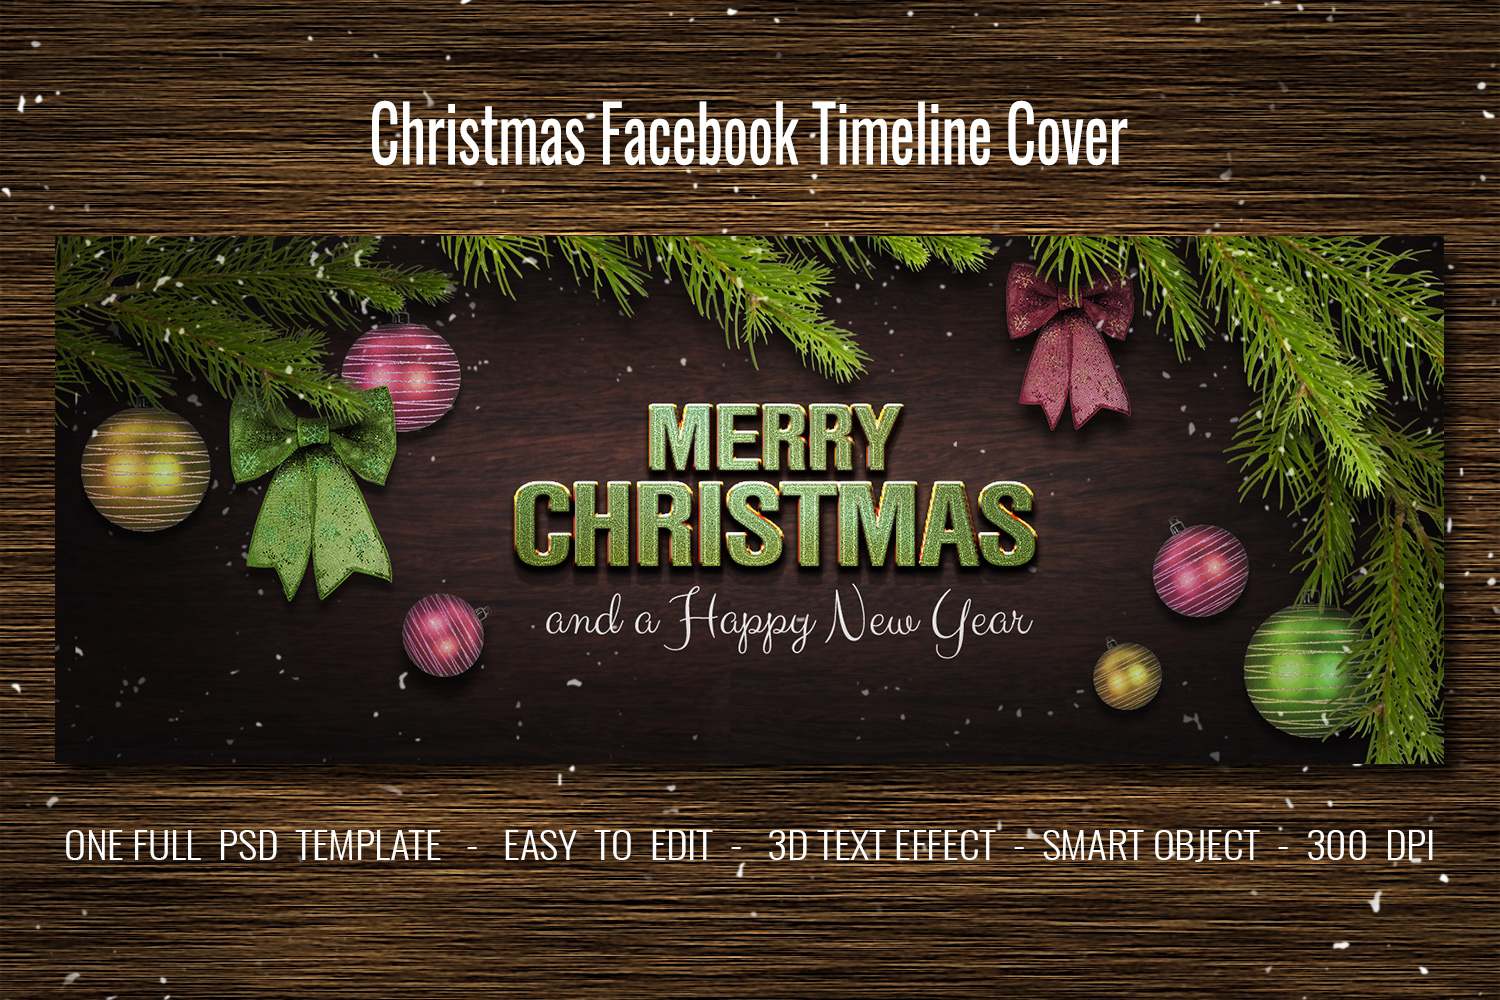 Christmas Facebook Timeline Cover & Instagram Banner PSD example image 3